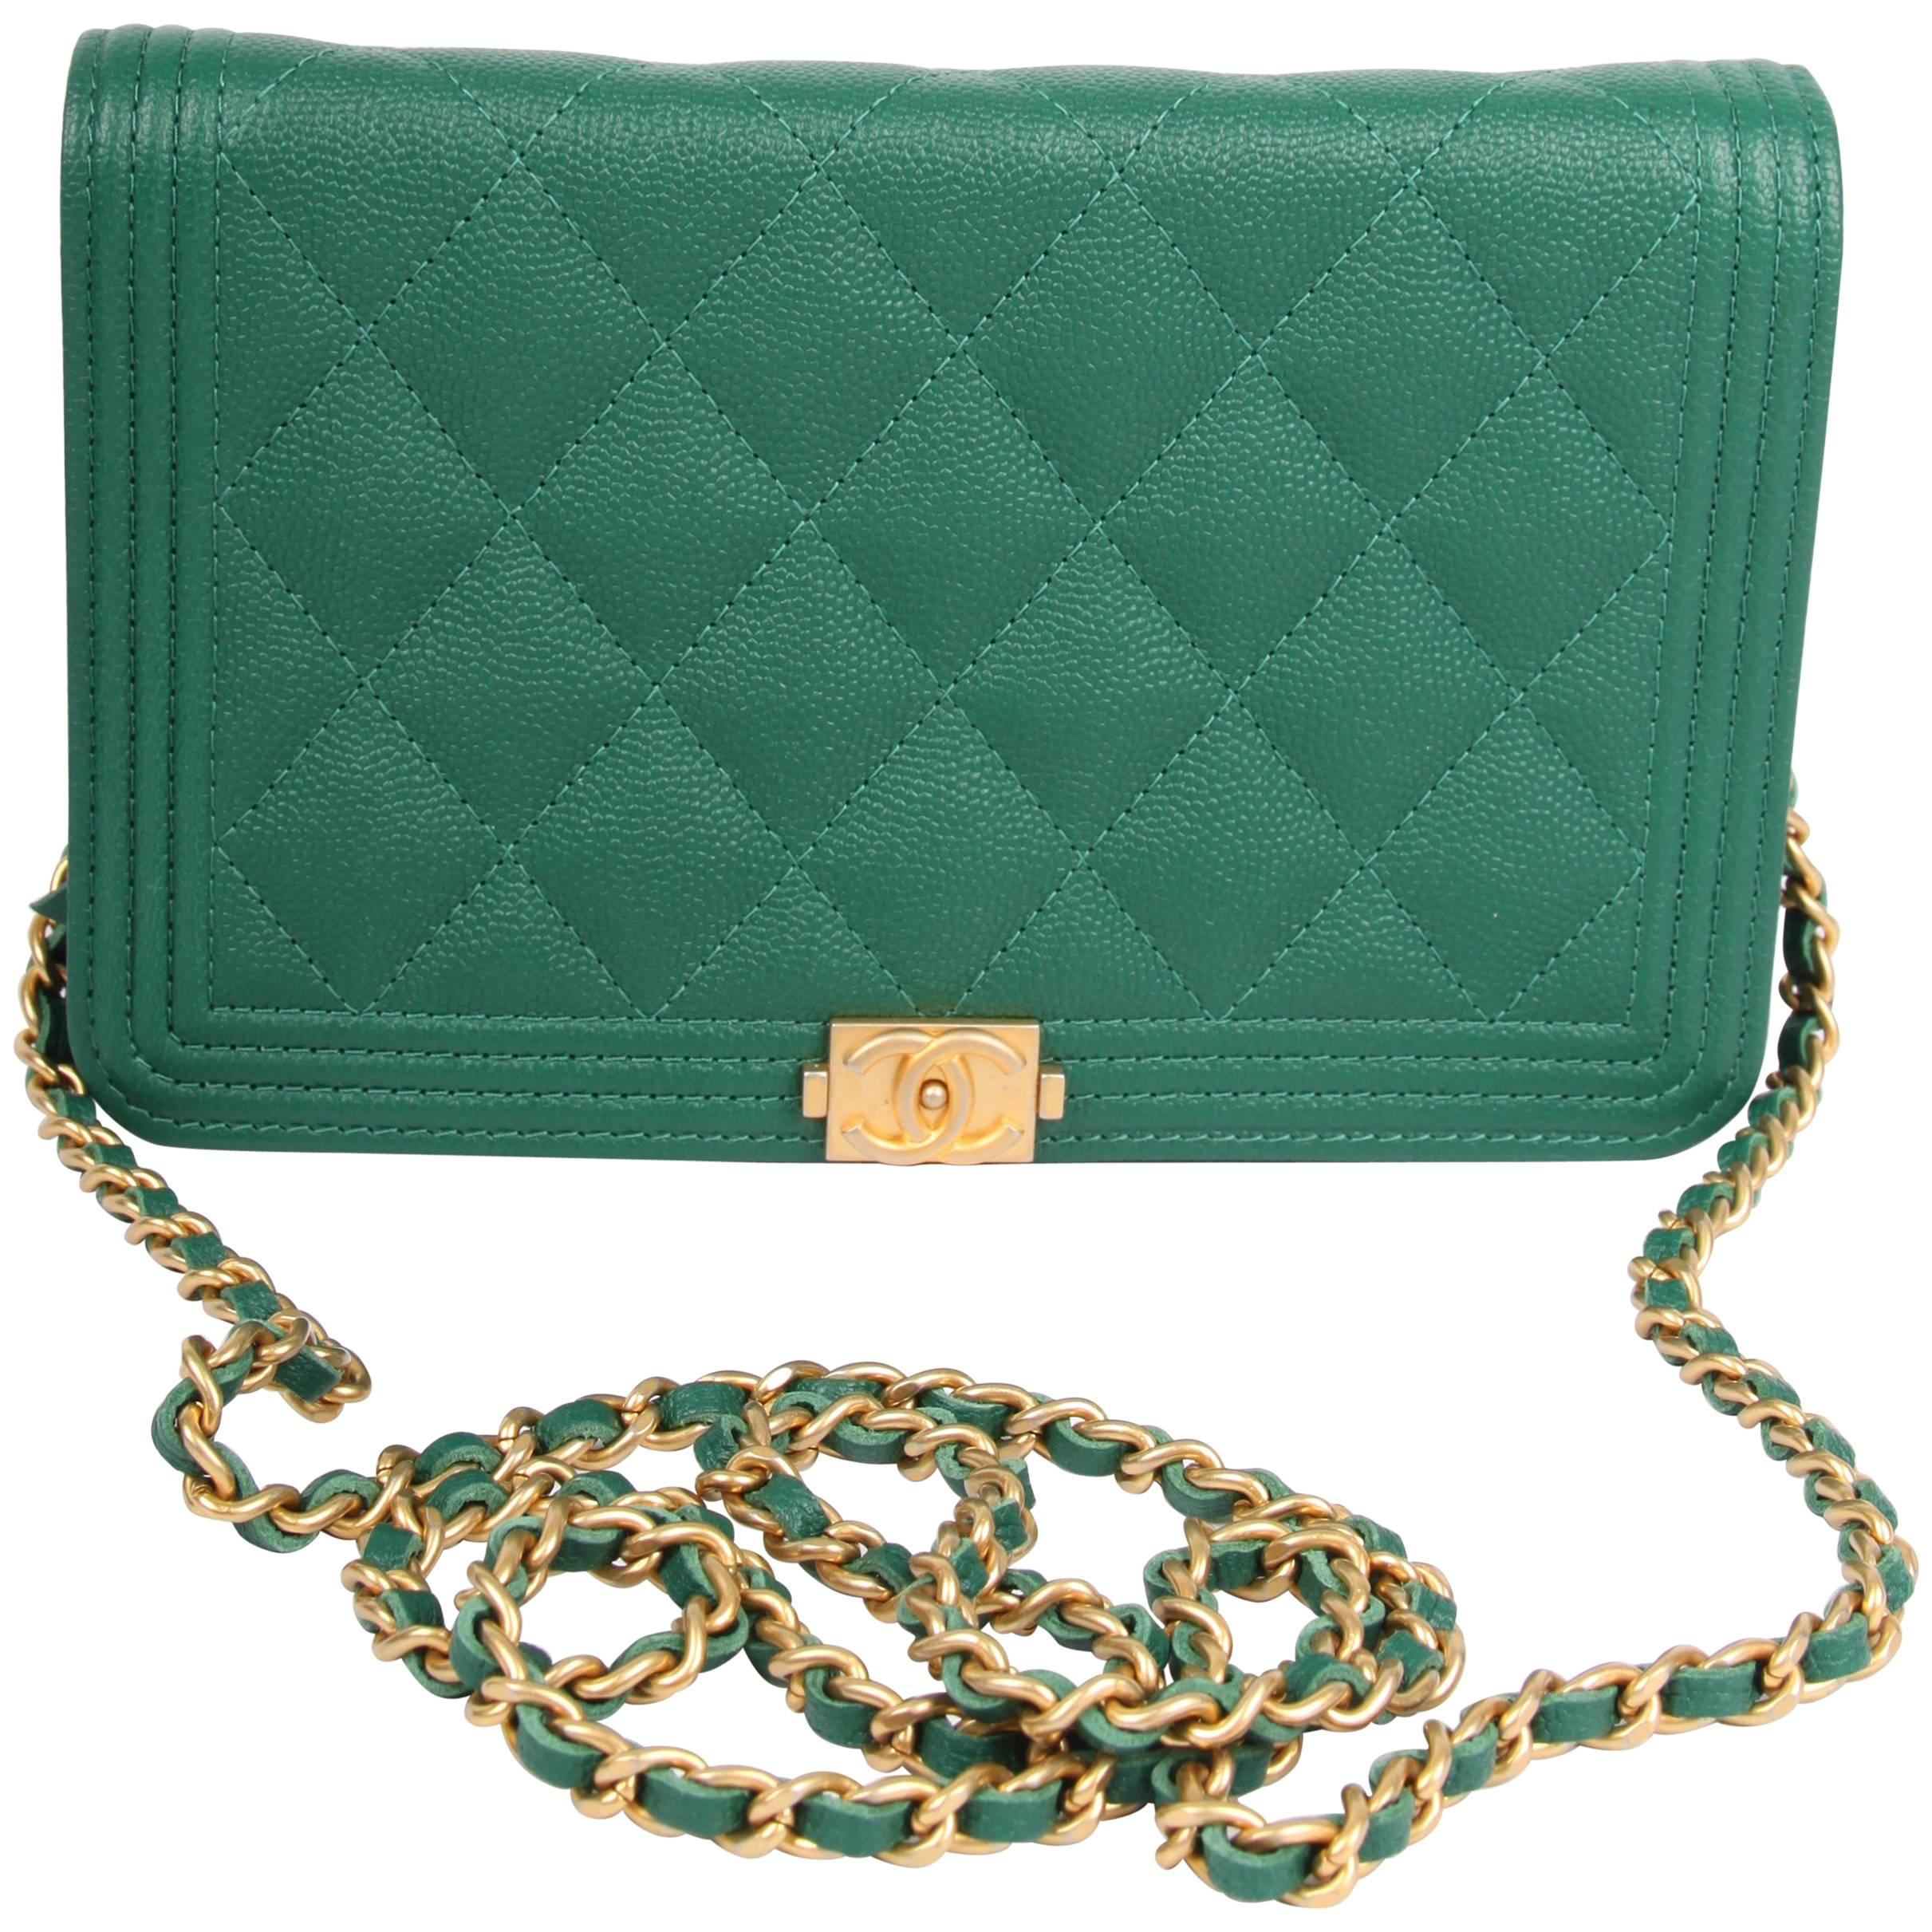 e16894e85c56 Chanel WOC Wallet on Chain Boy Bag - emerald green at 1stdibs